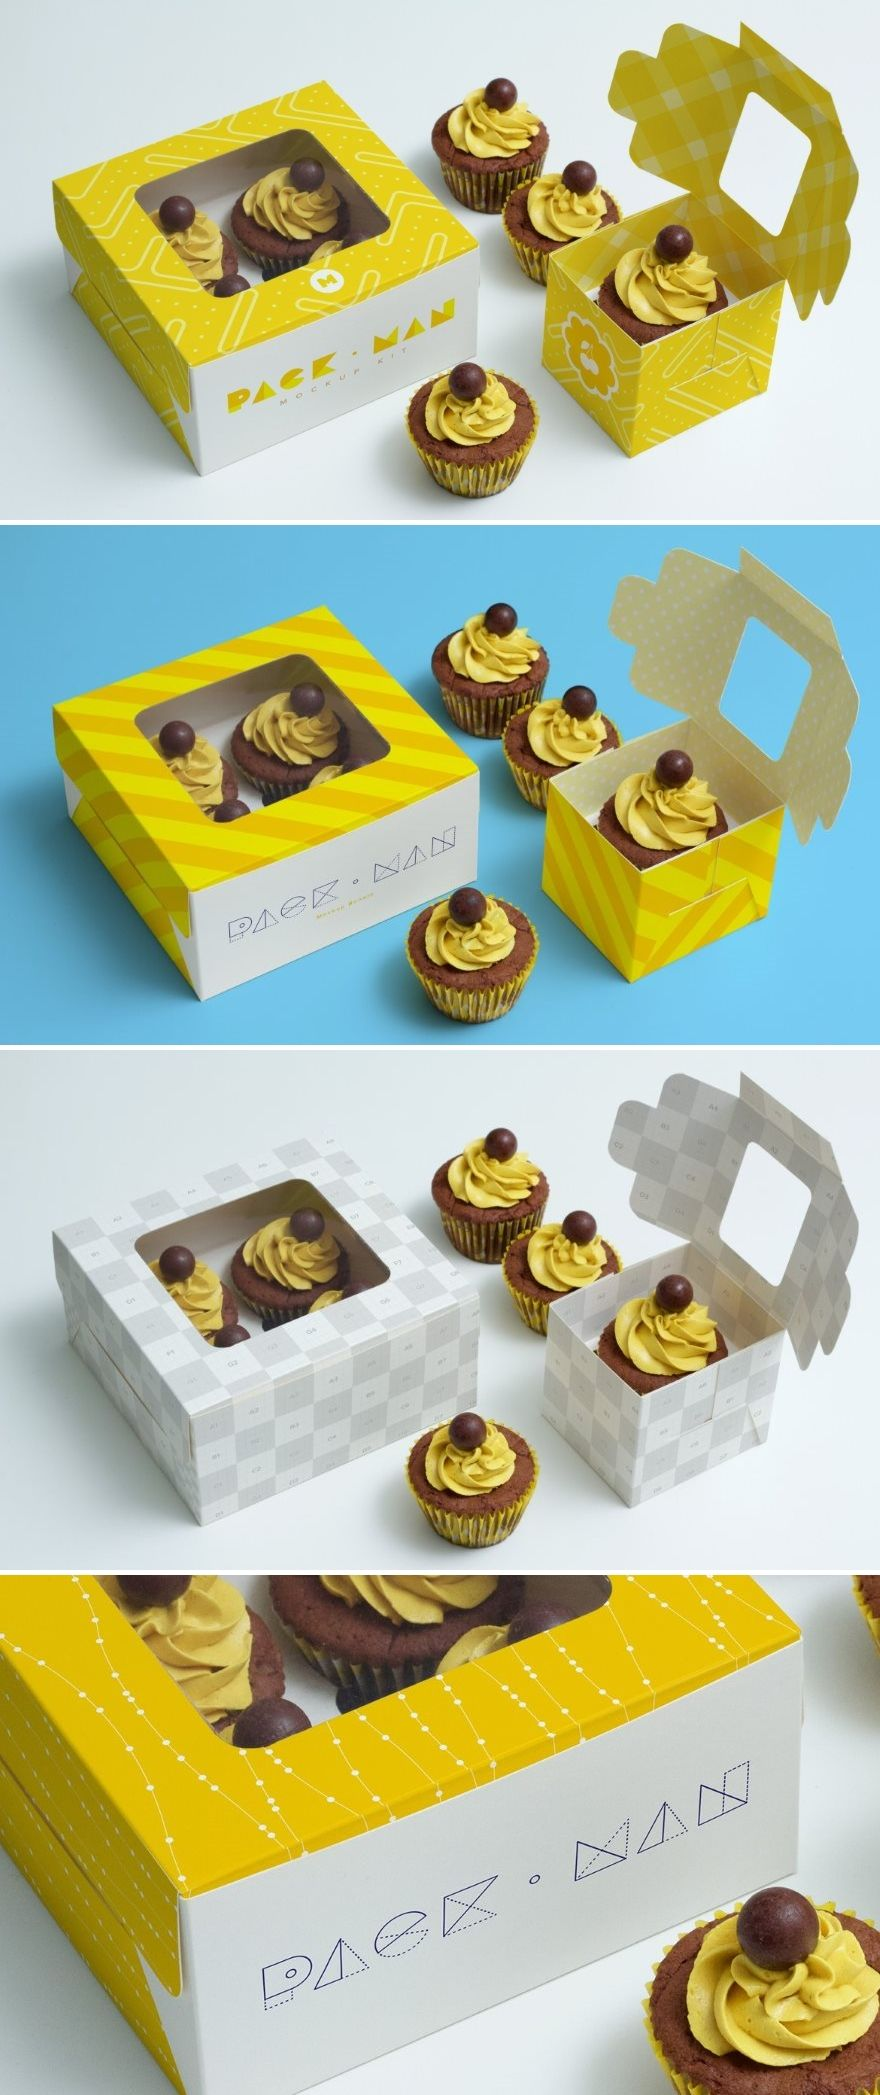 Download Download This Free Psd Mockup Of Two Beautiful Cupcake Boxes This Free Mockup Includes 2 Boxes One For 4 Cupcakes Box And On Box Mockup Design Freebie Mockup